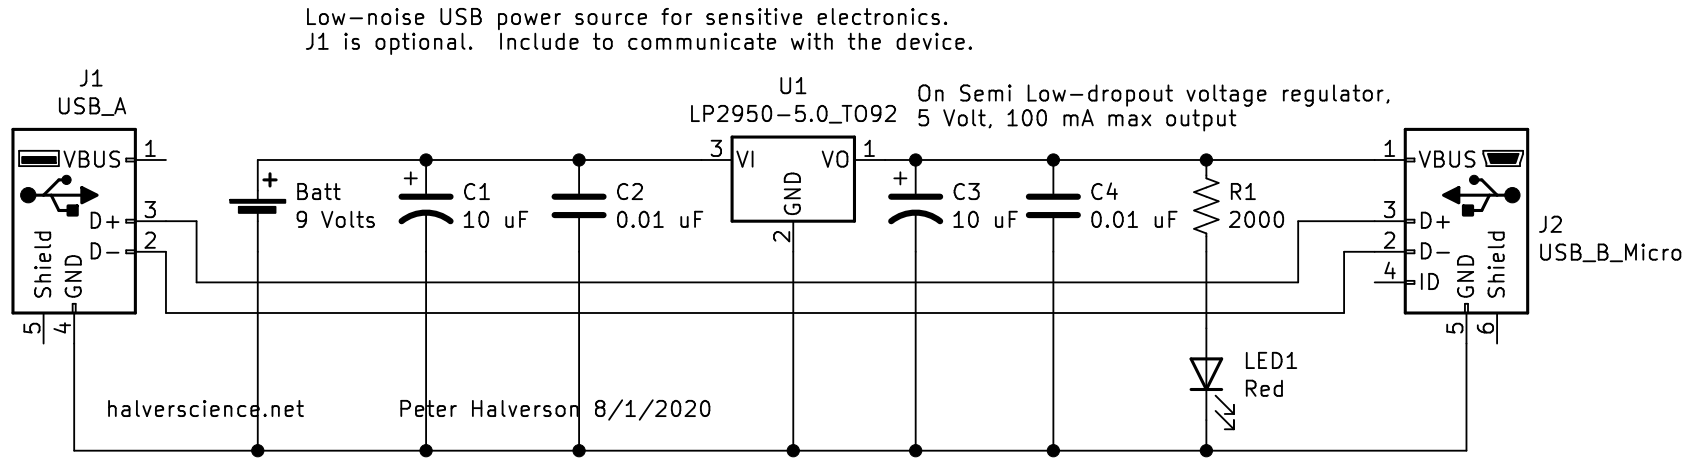 <strong>Low-noise power source for USB devices schematic. </strong>